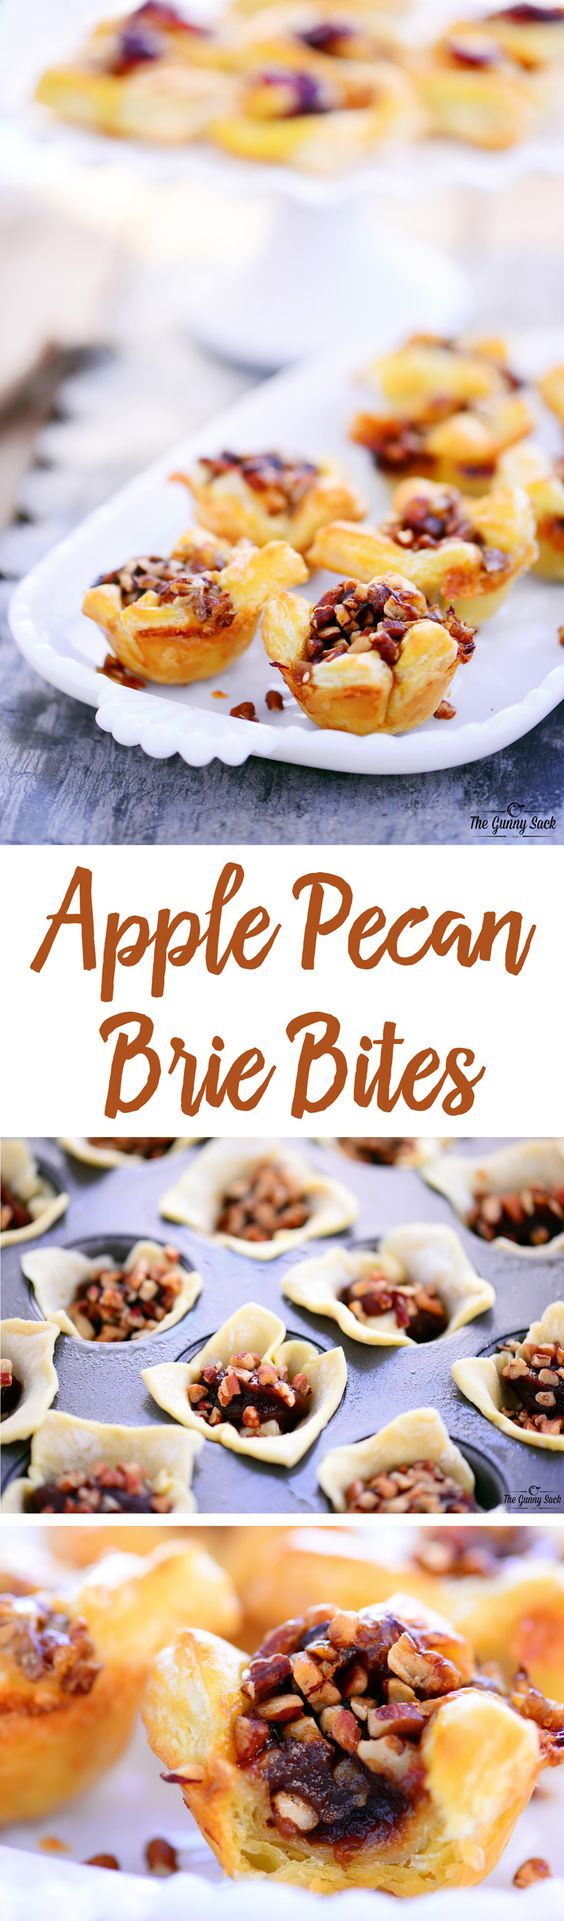 This yummy Apple Pecan Brie Bites recipe is an easy holiday appetizer that everyone will love. The melted brie with apple butter and pecans in a flaky puff is amazing!